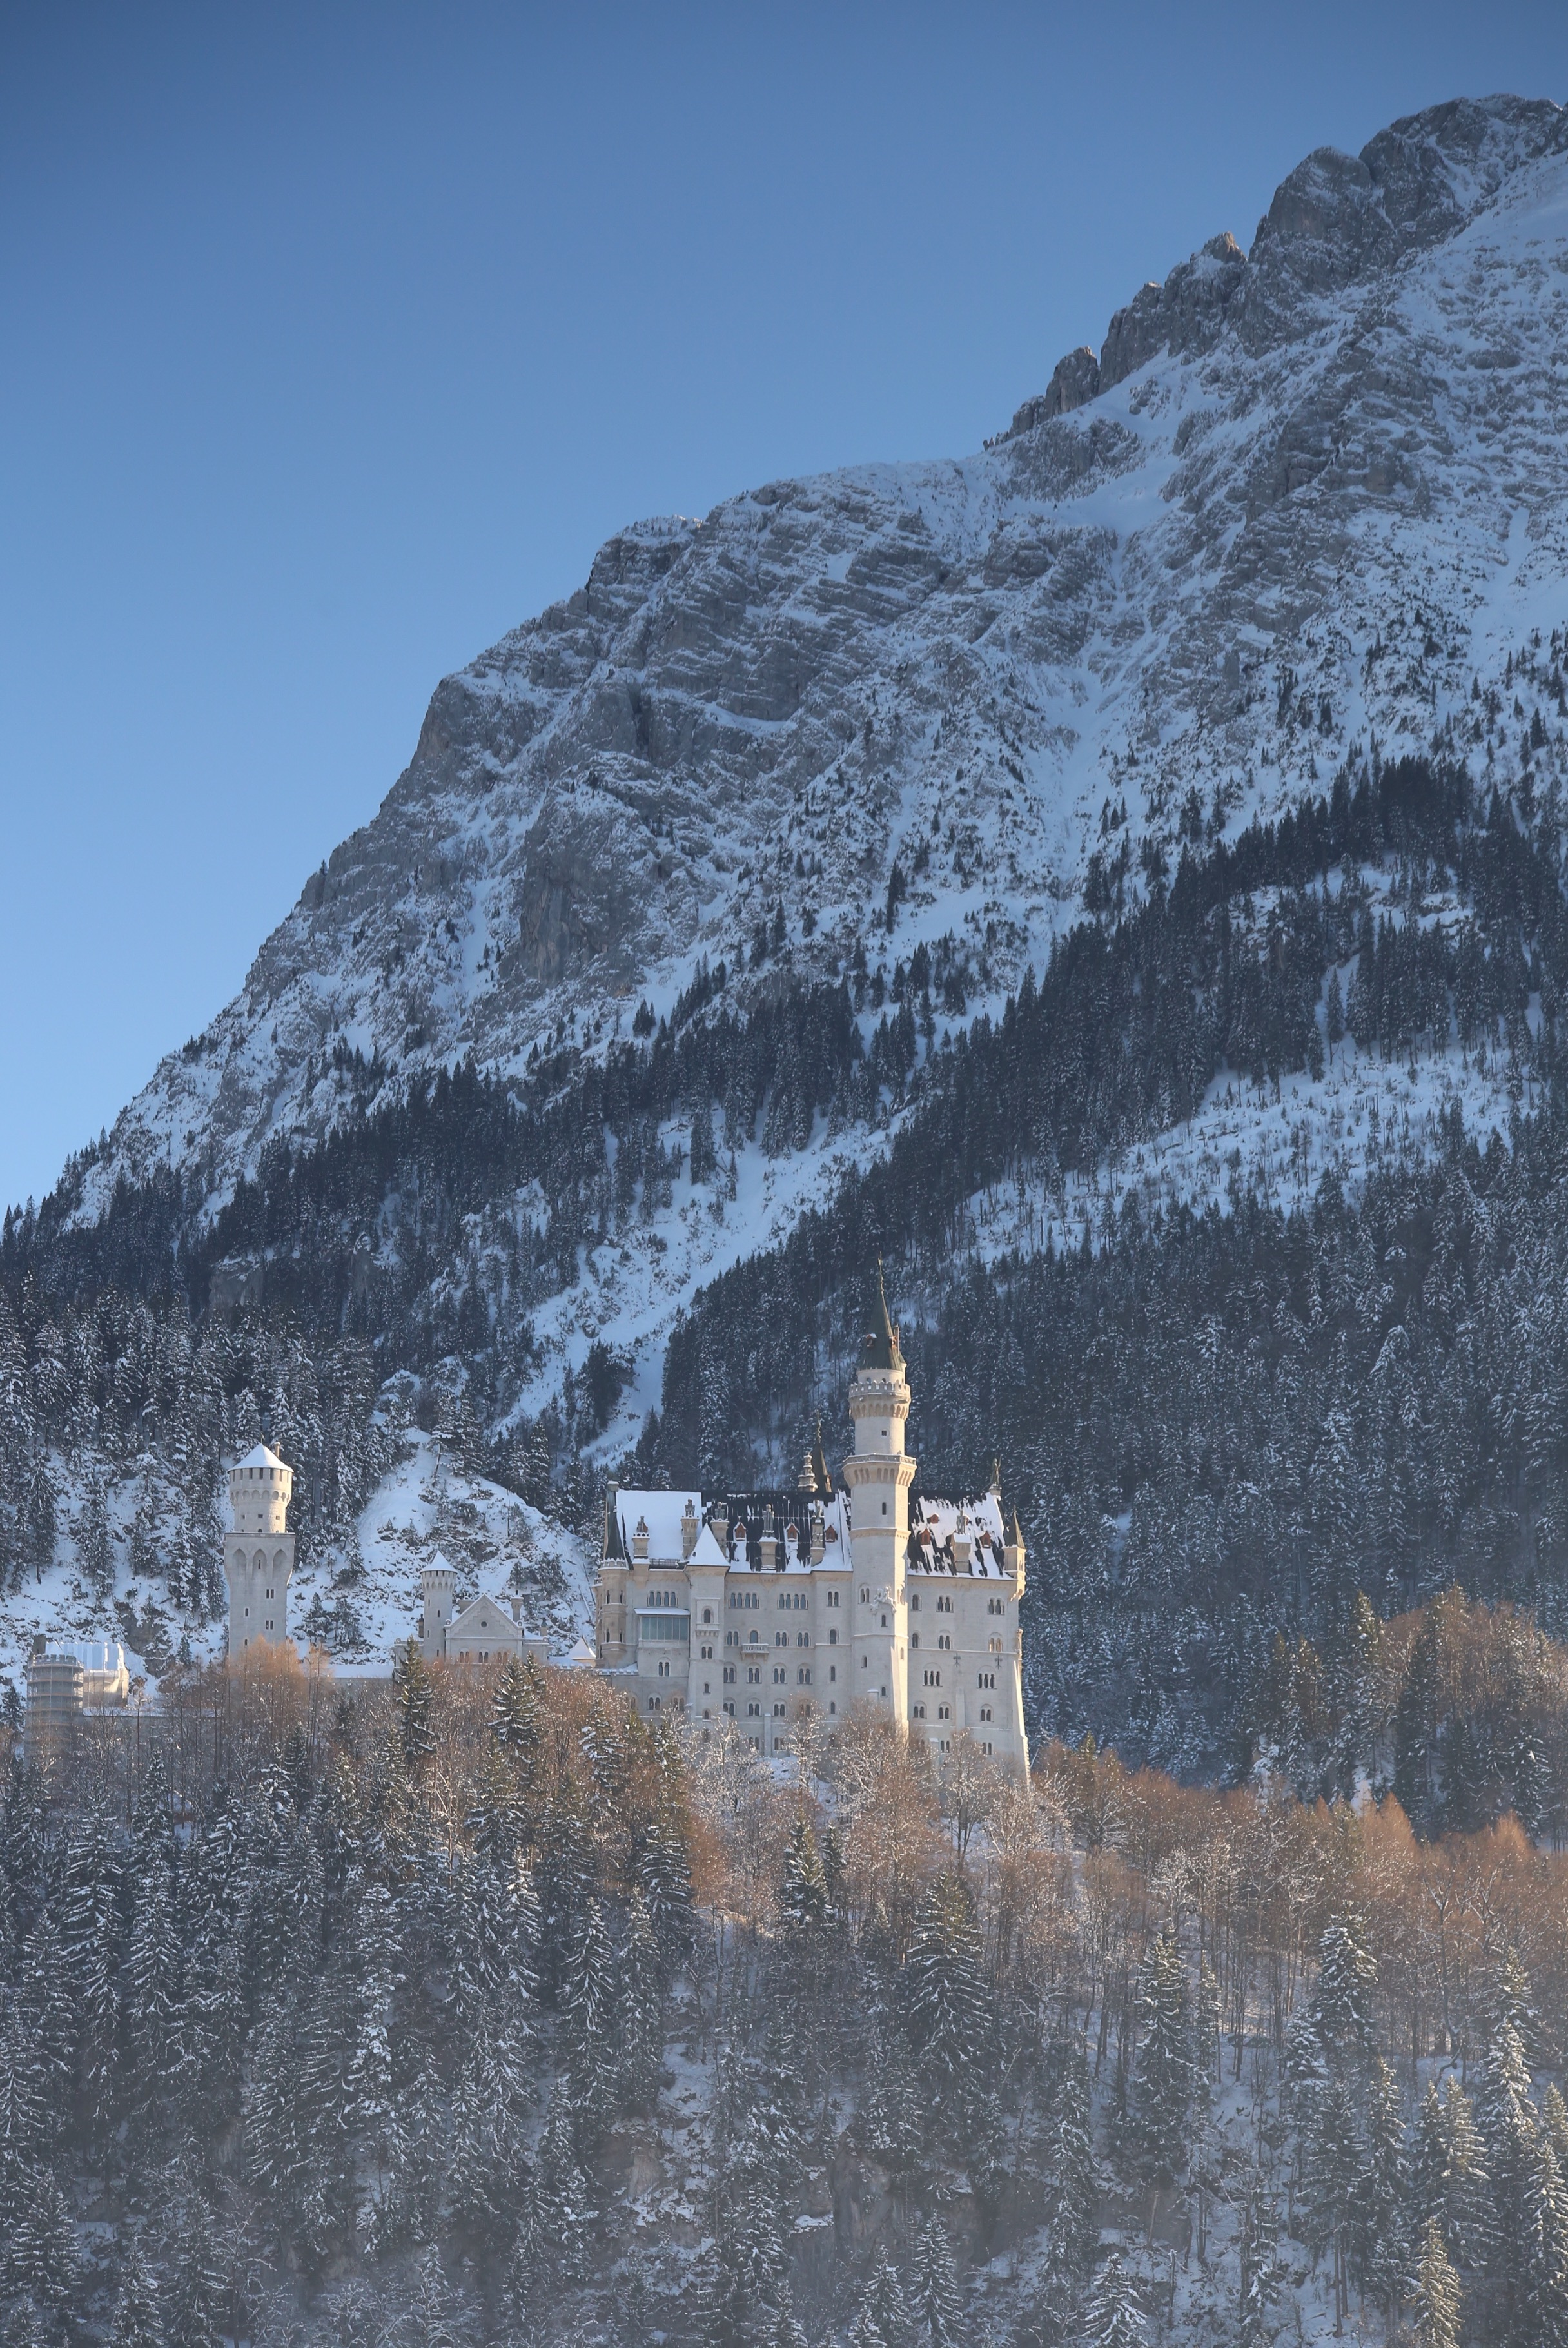 The real cinderella castle in winter, Germany.